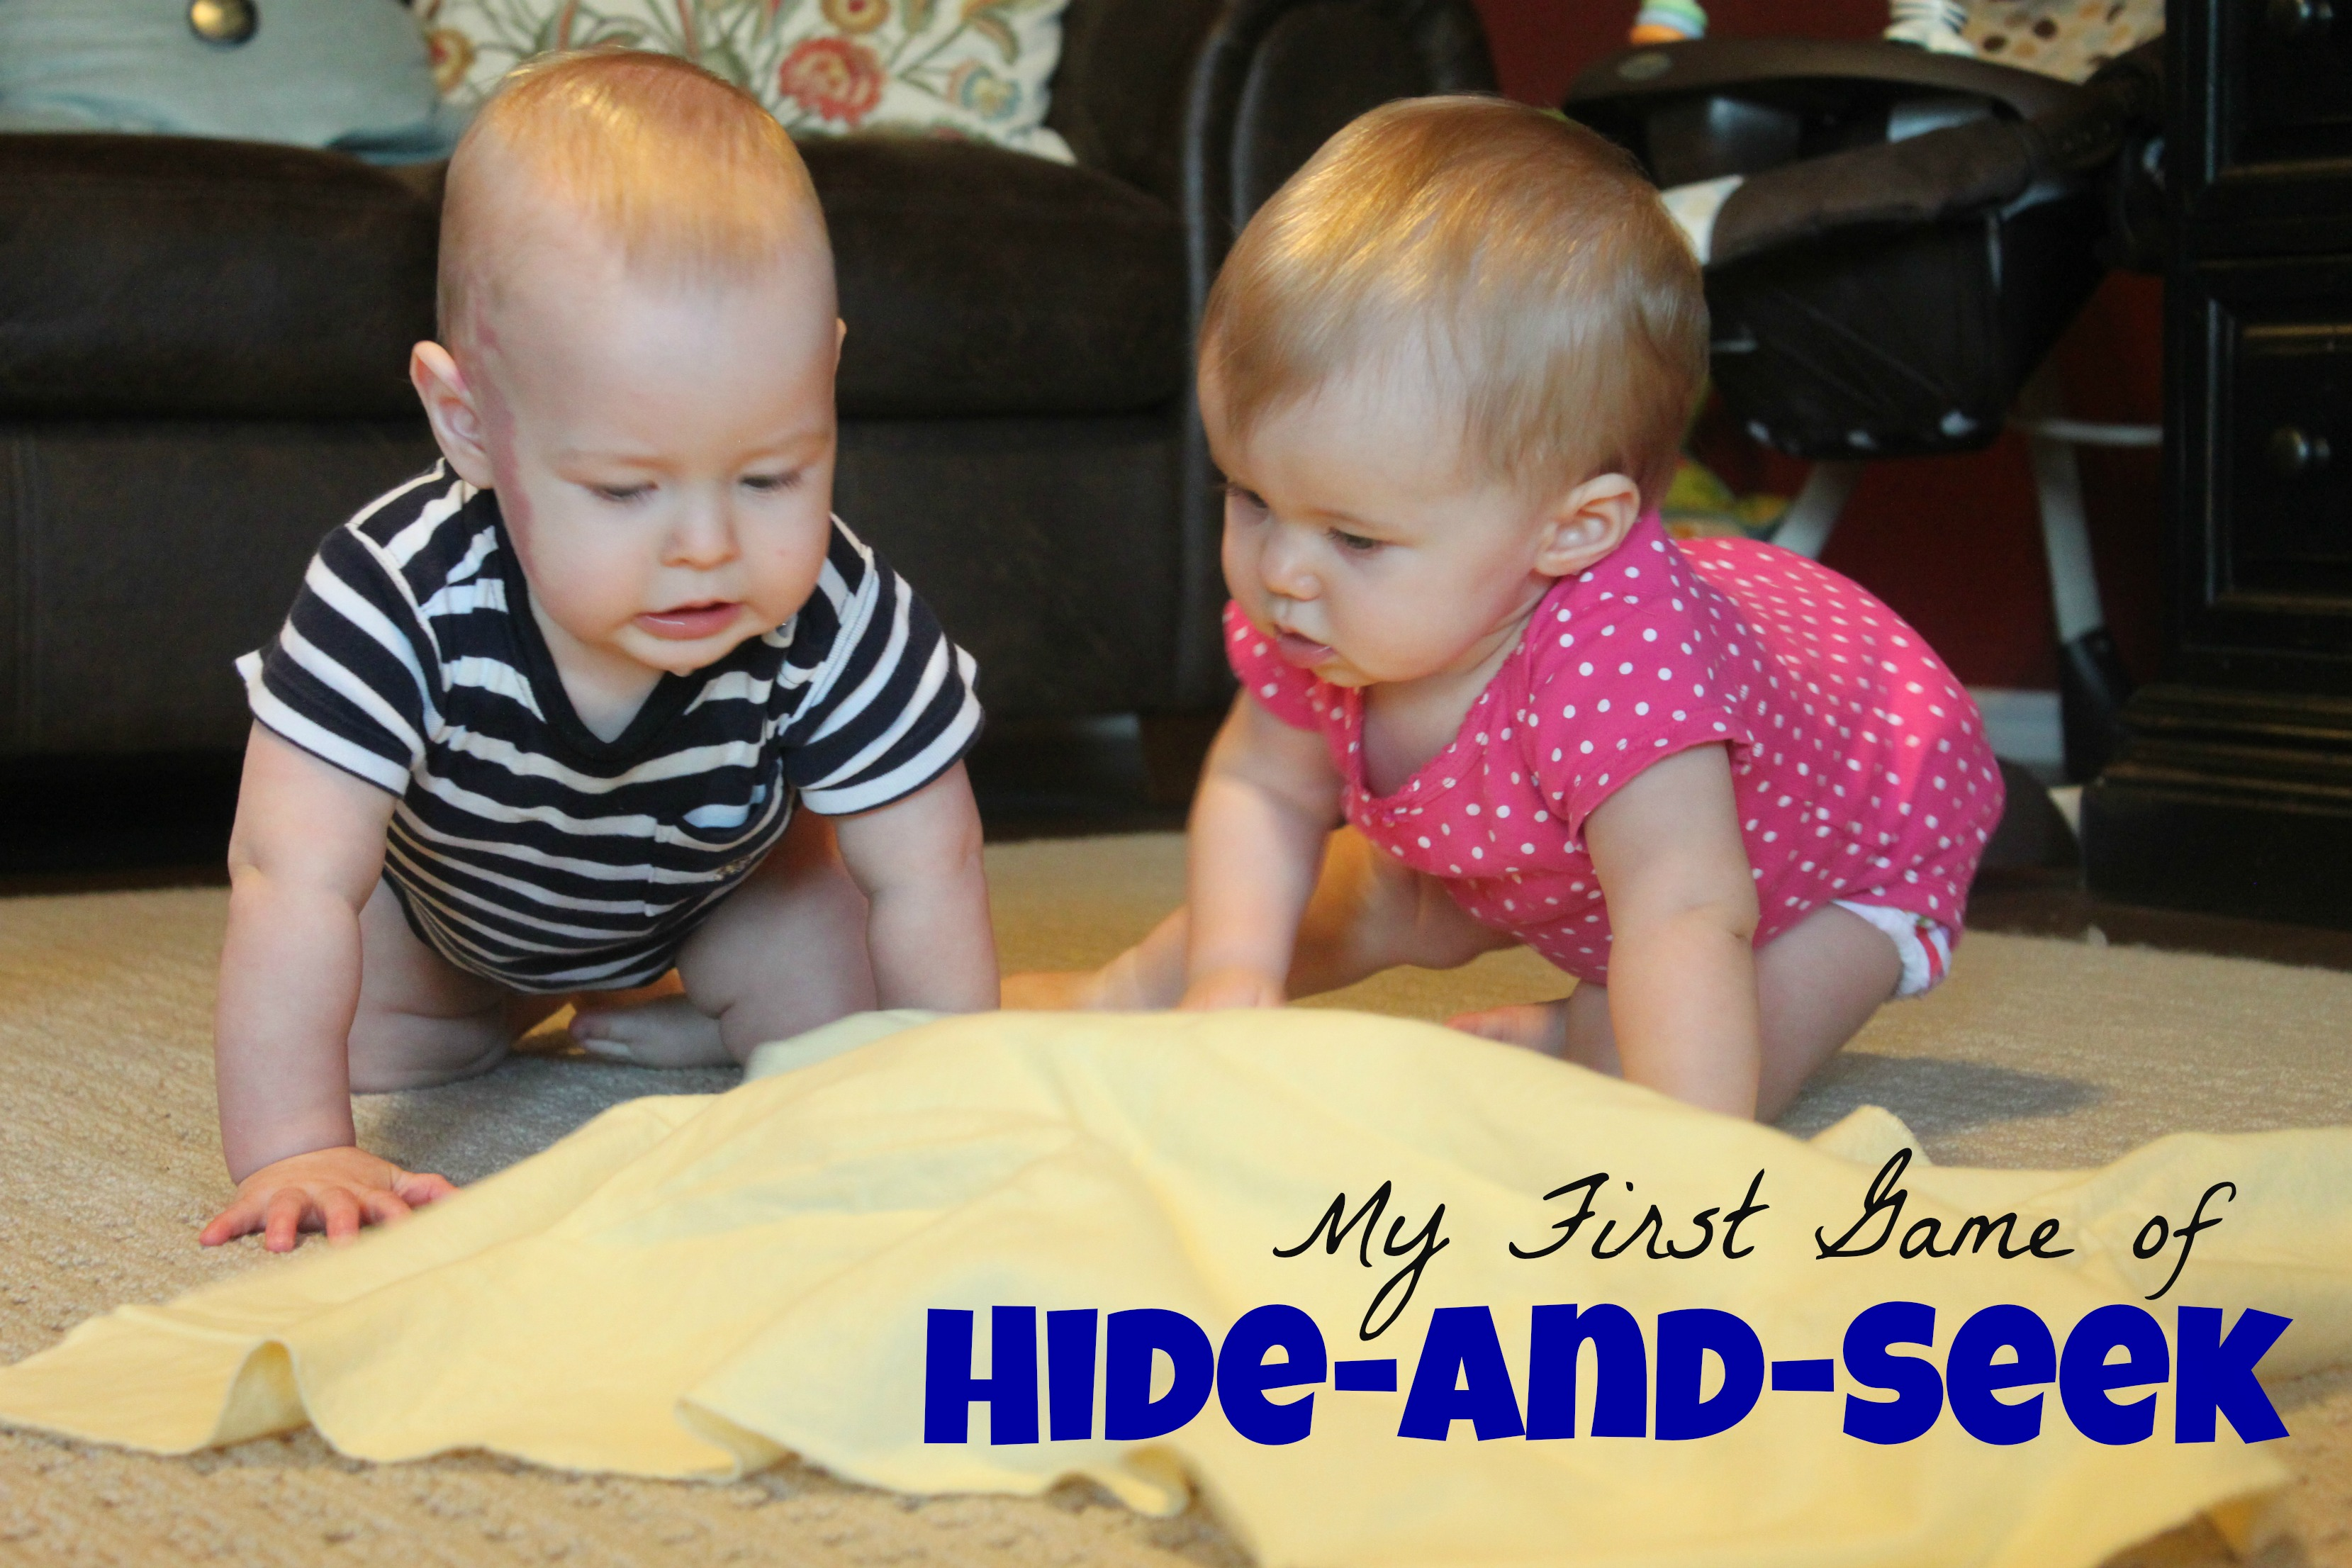 My First Game of Hide-and-Seek